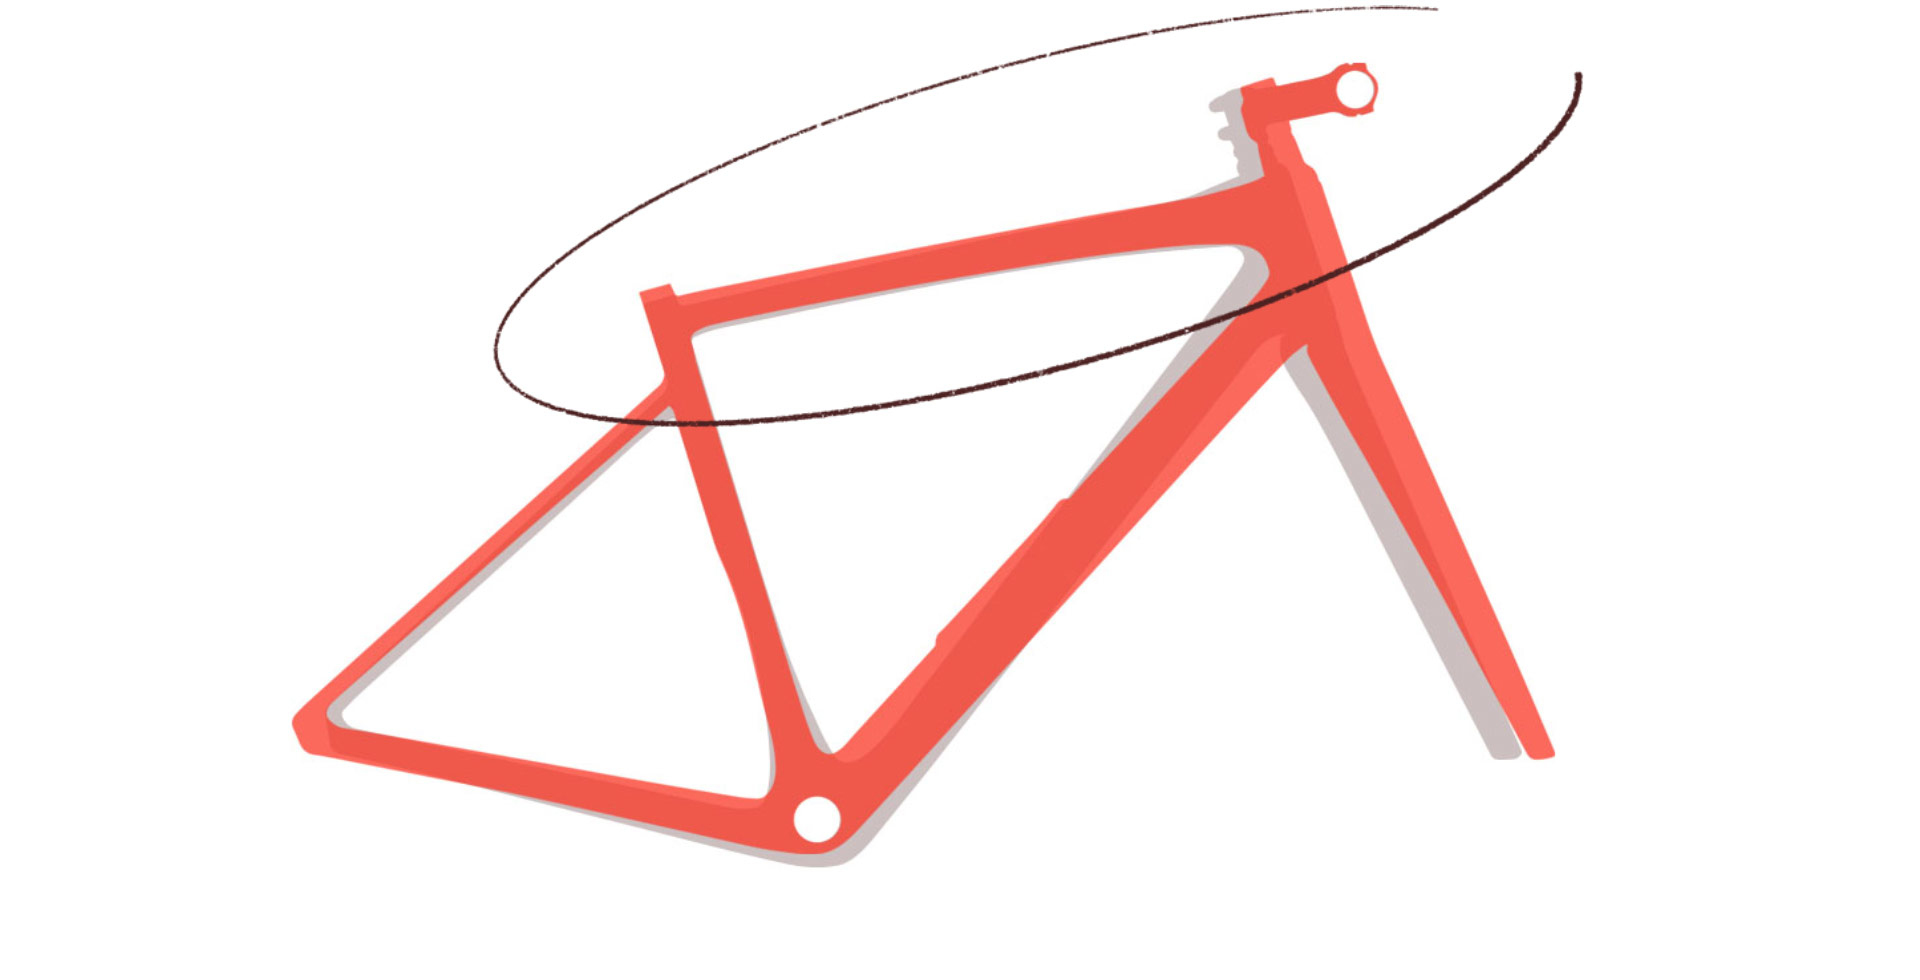 Specialized frame geometry